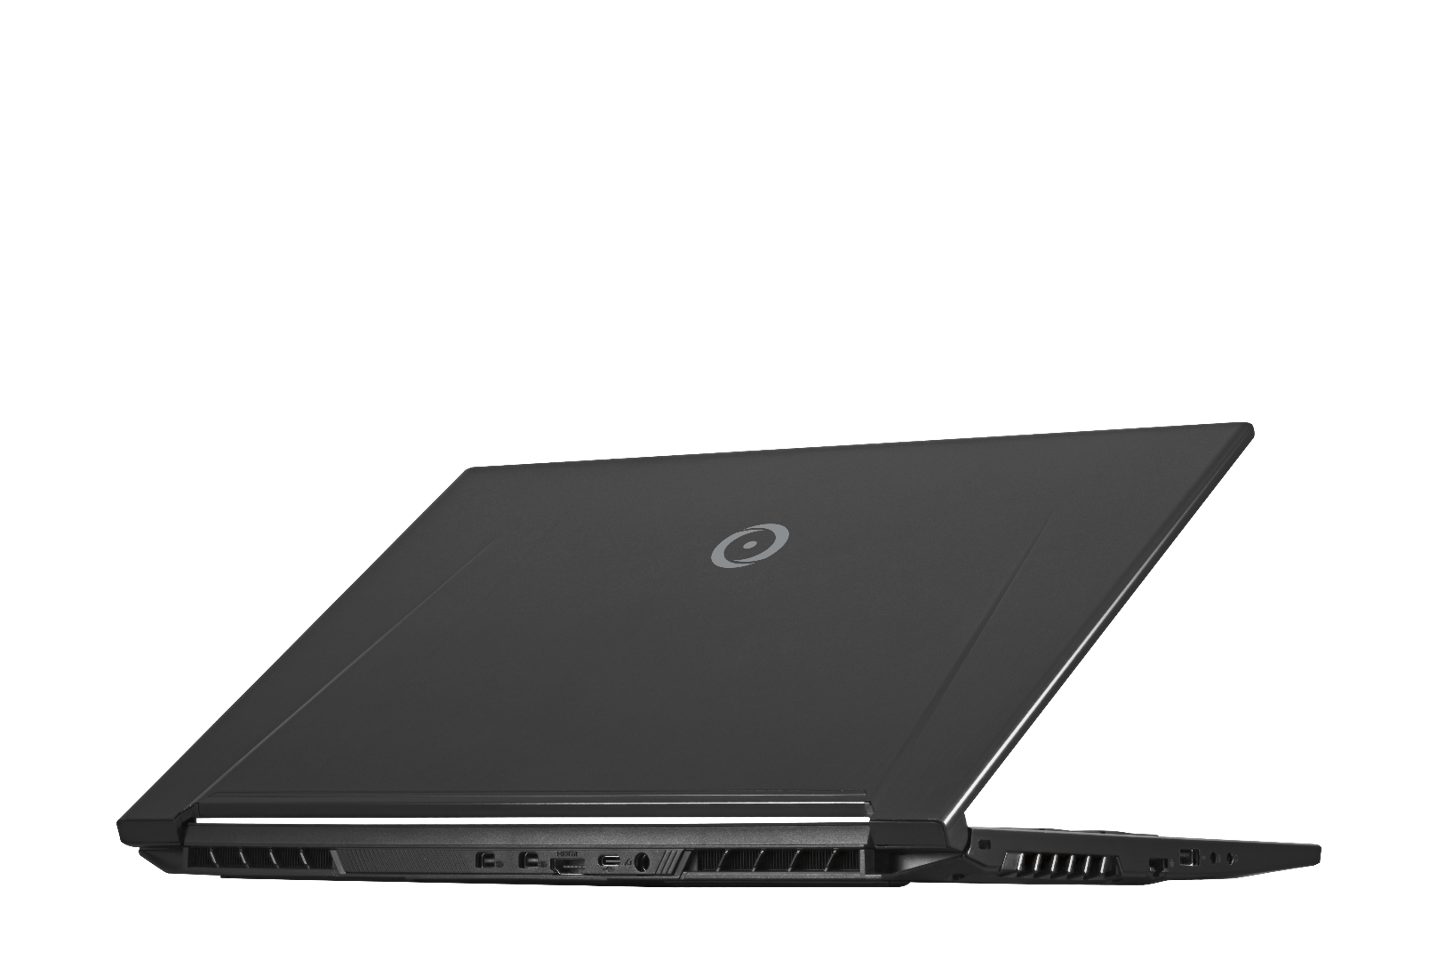 The Origin EON15-S gaming laptop launches with a Core-i7 processor option only, but a Core-i9 is due to follow soon